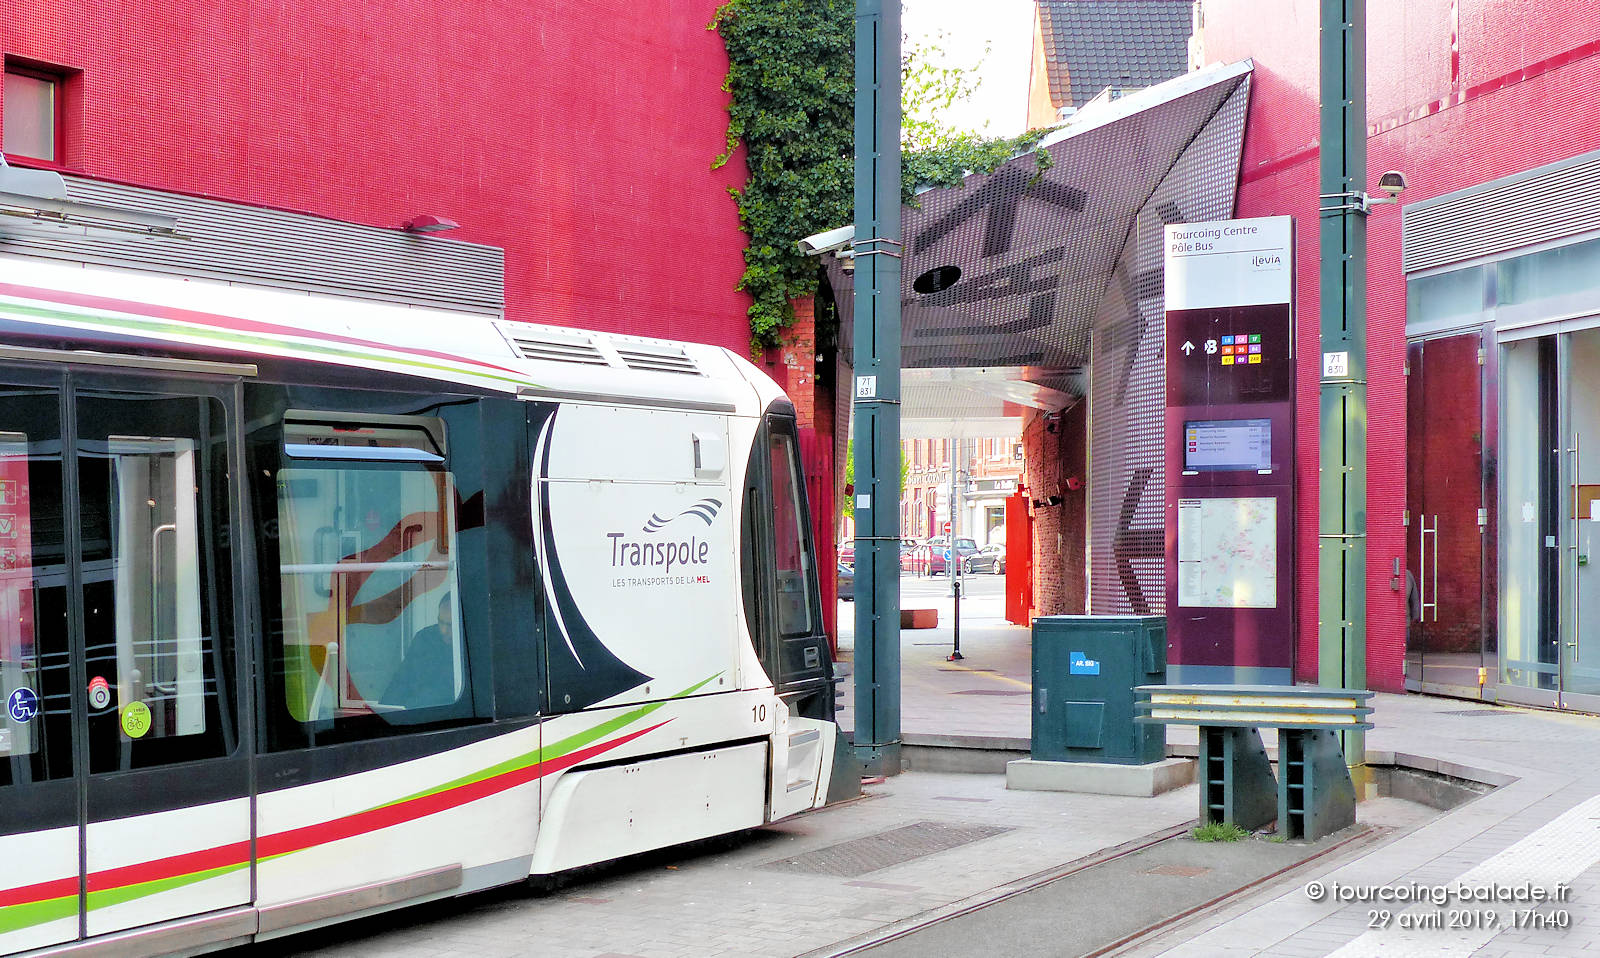 Tramway Tourcoing Centre - Transpole